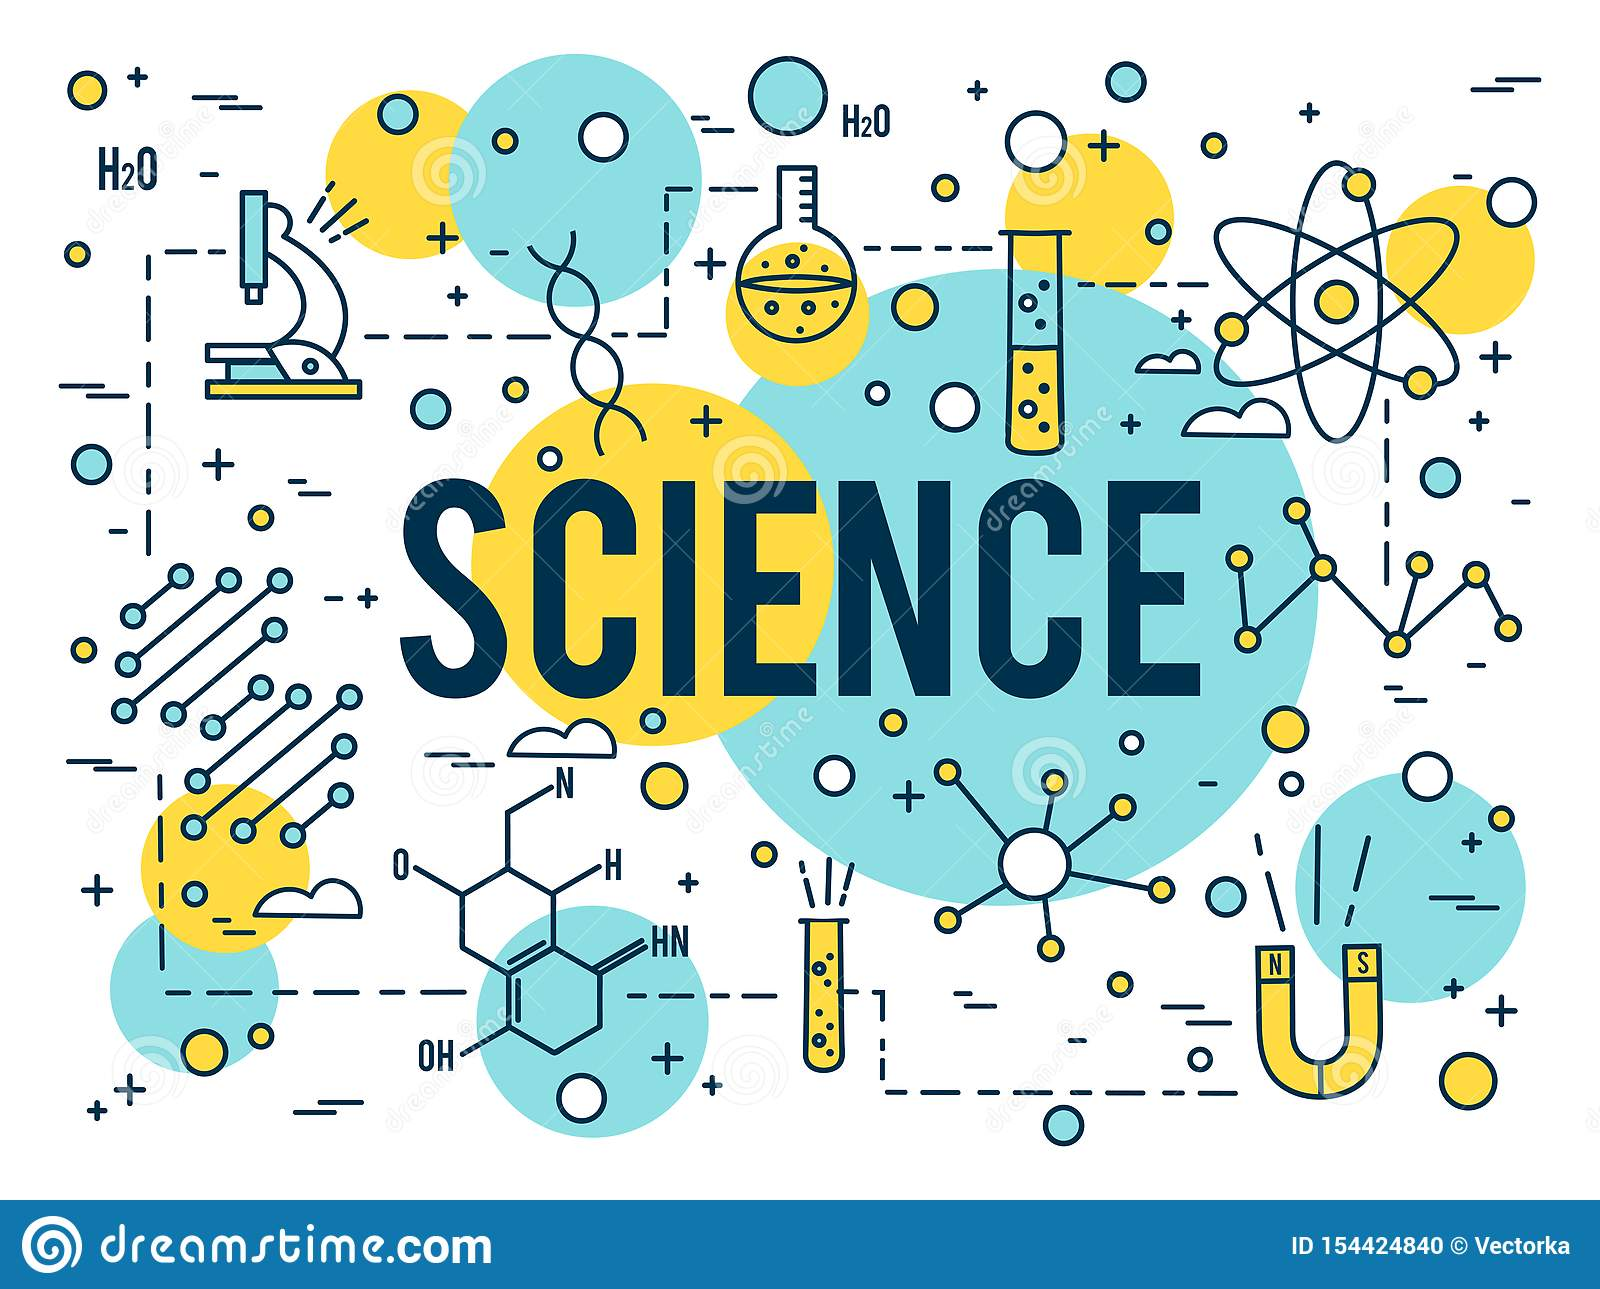 science background research vector linear elements icon dna outline biotechnology line medical tiny concept kindergarten activities